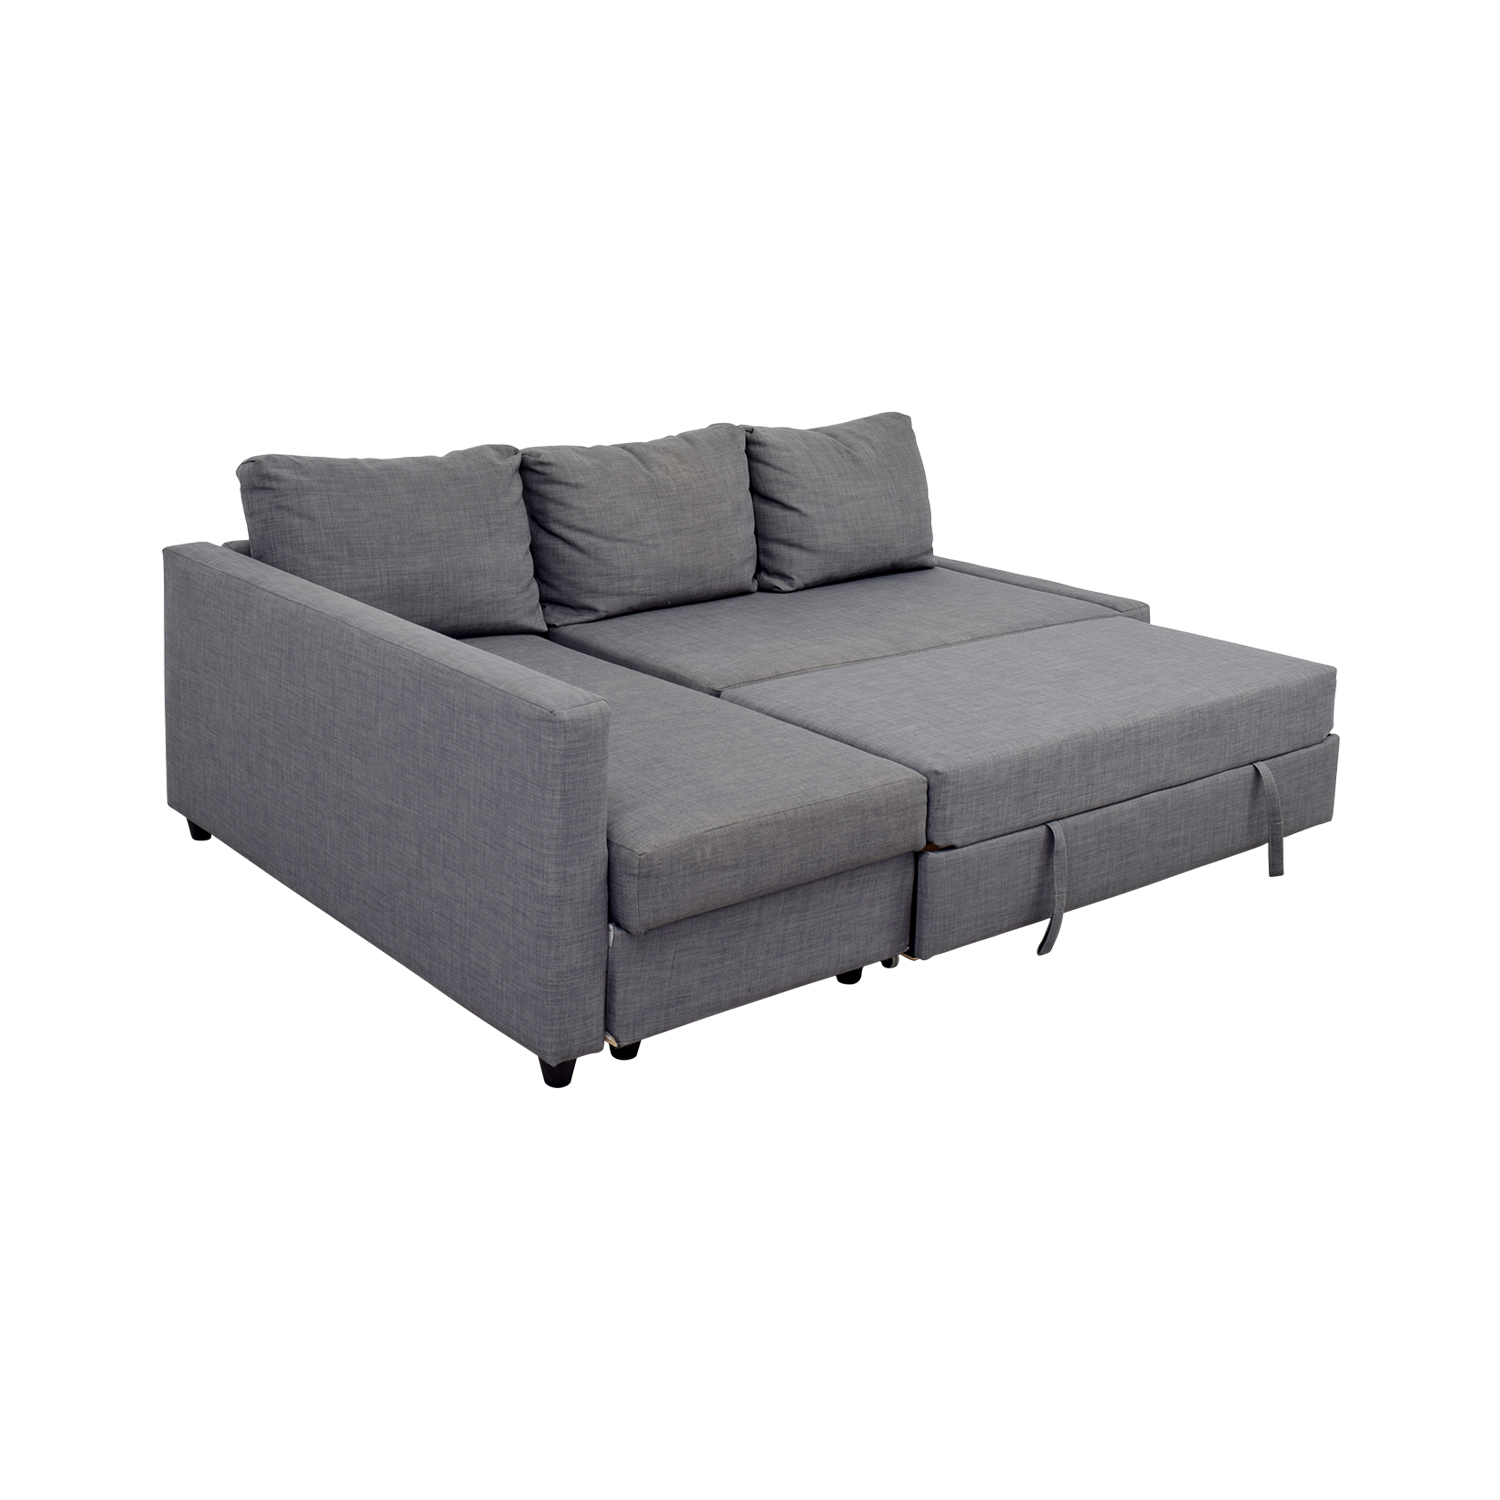 40 off ikea ikea friheten sofa sofas. Black Bedroom Furniture Sets. Home Design Ideas